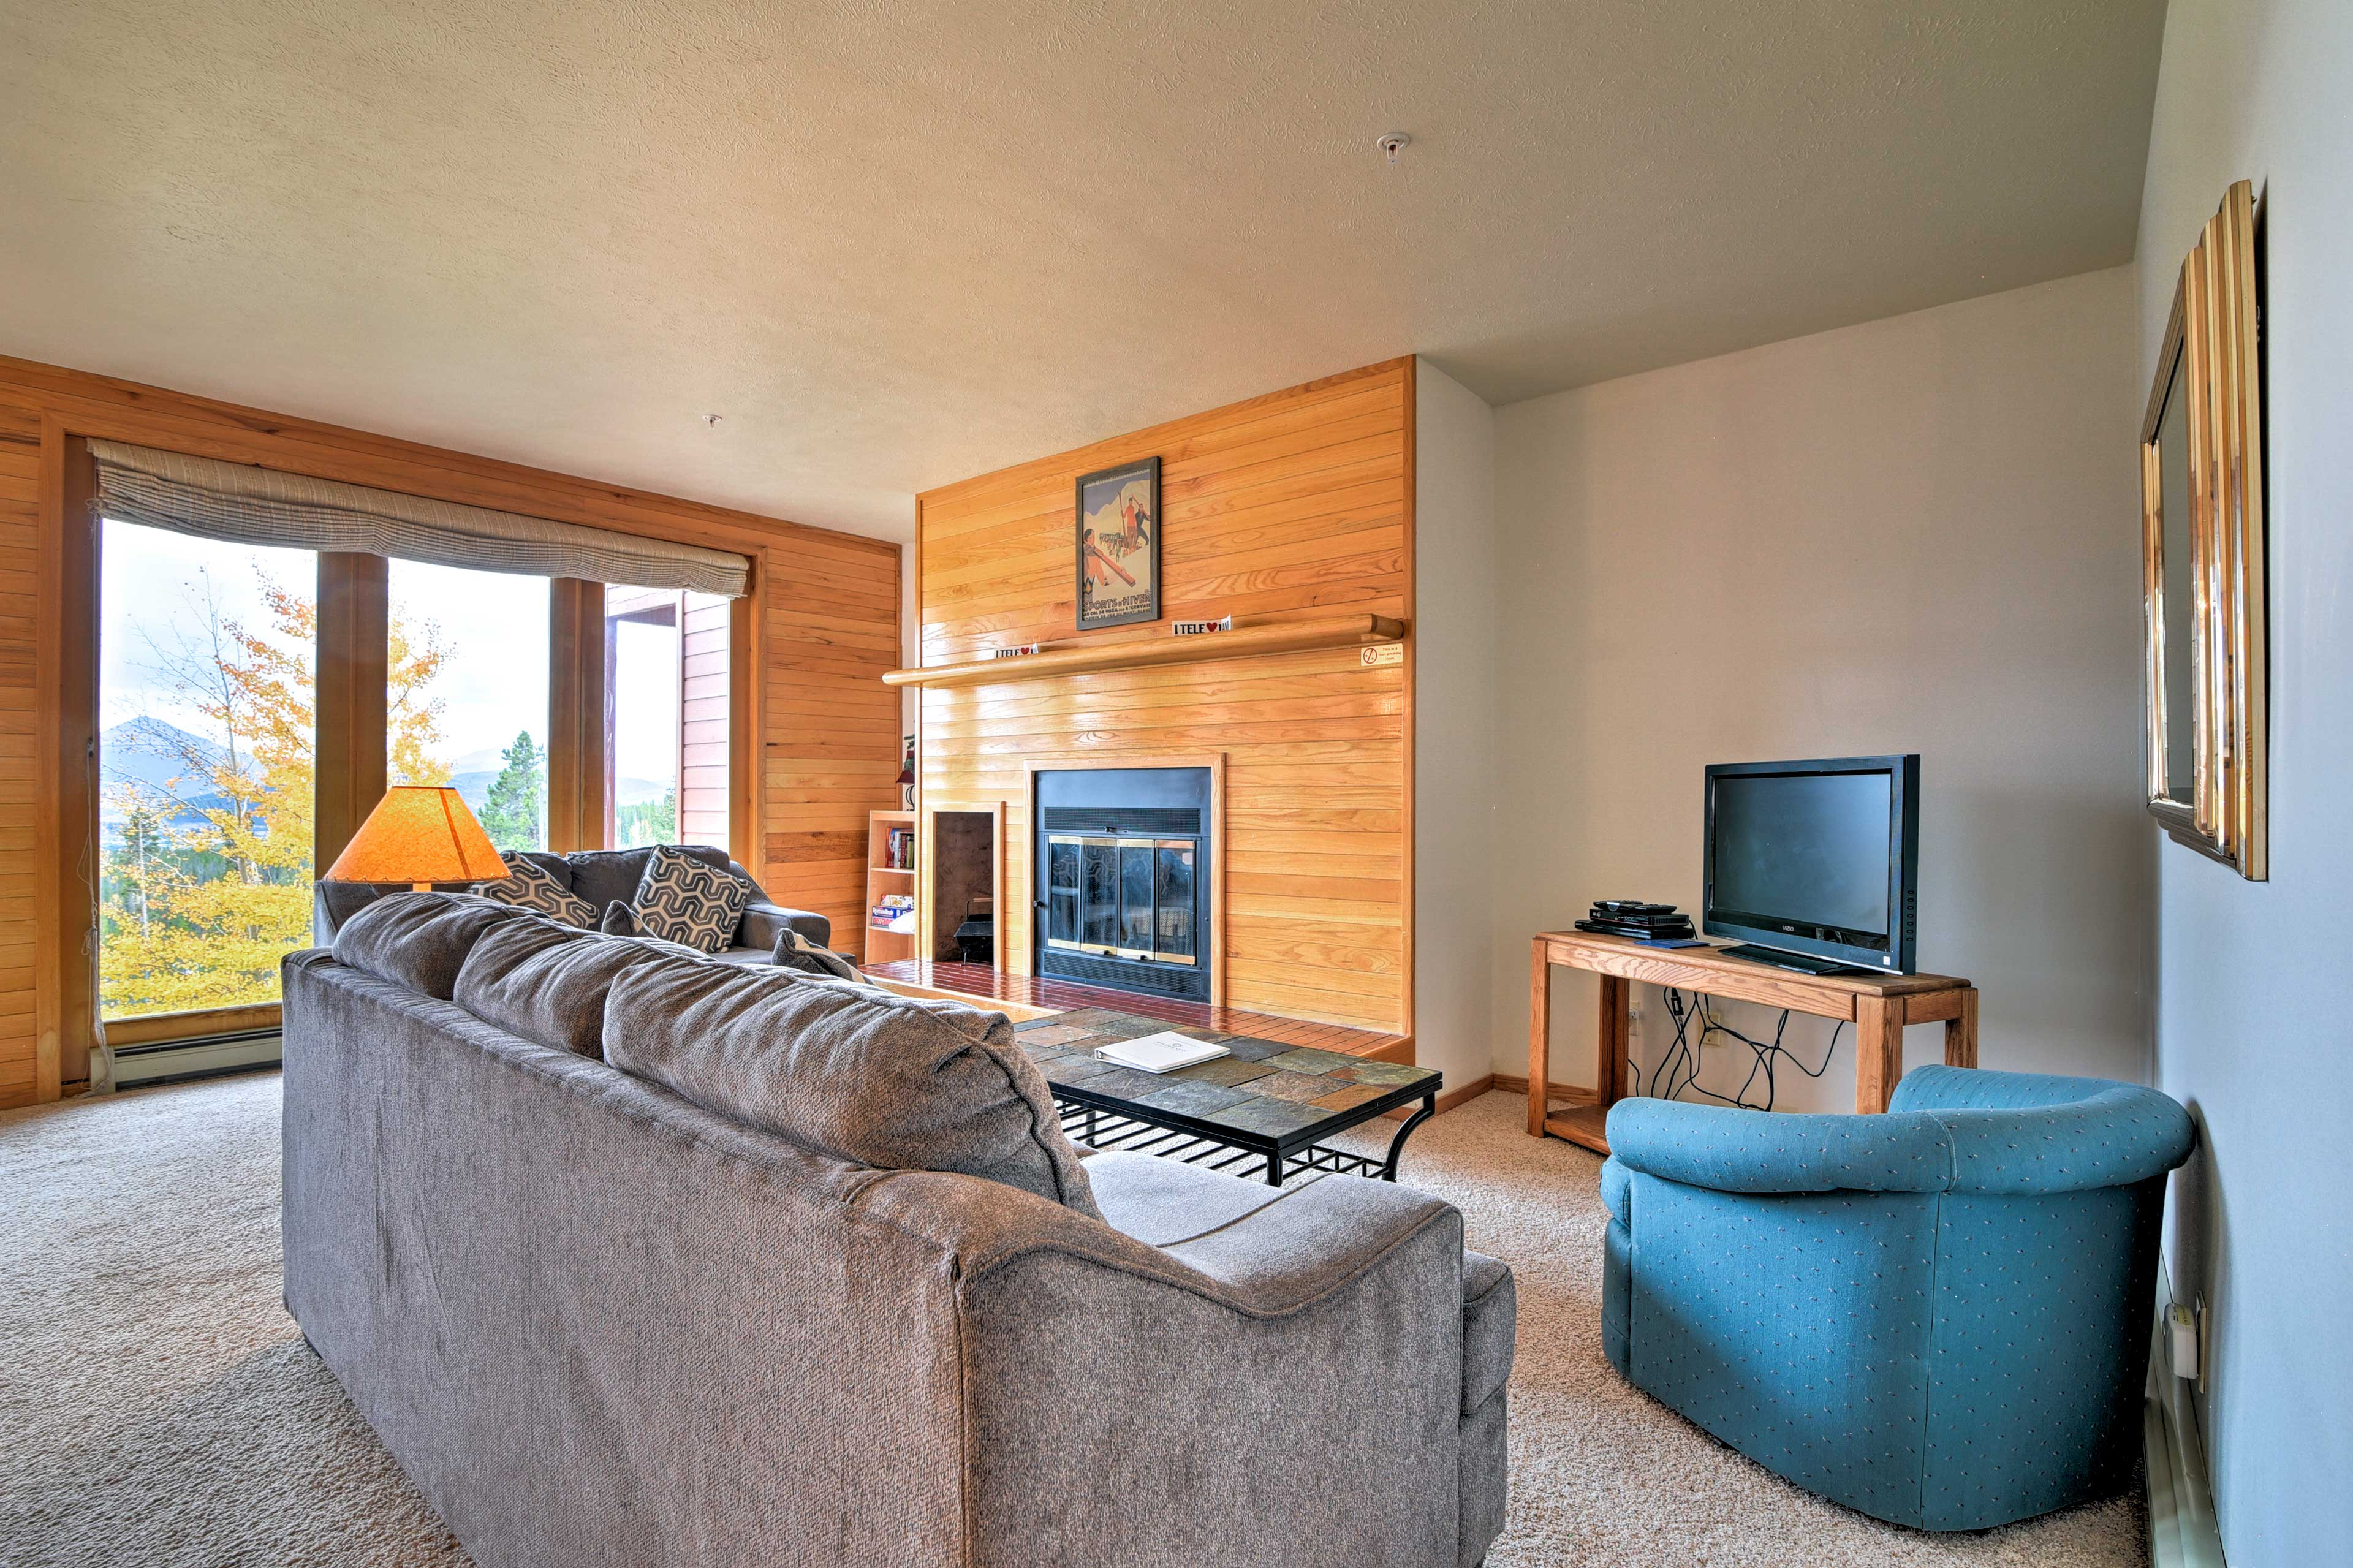 Relax in the living room after skiing at Keystone.